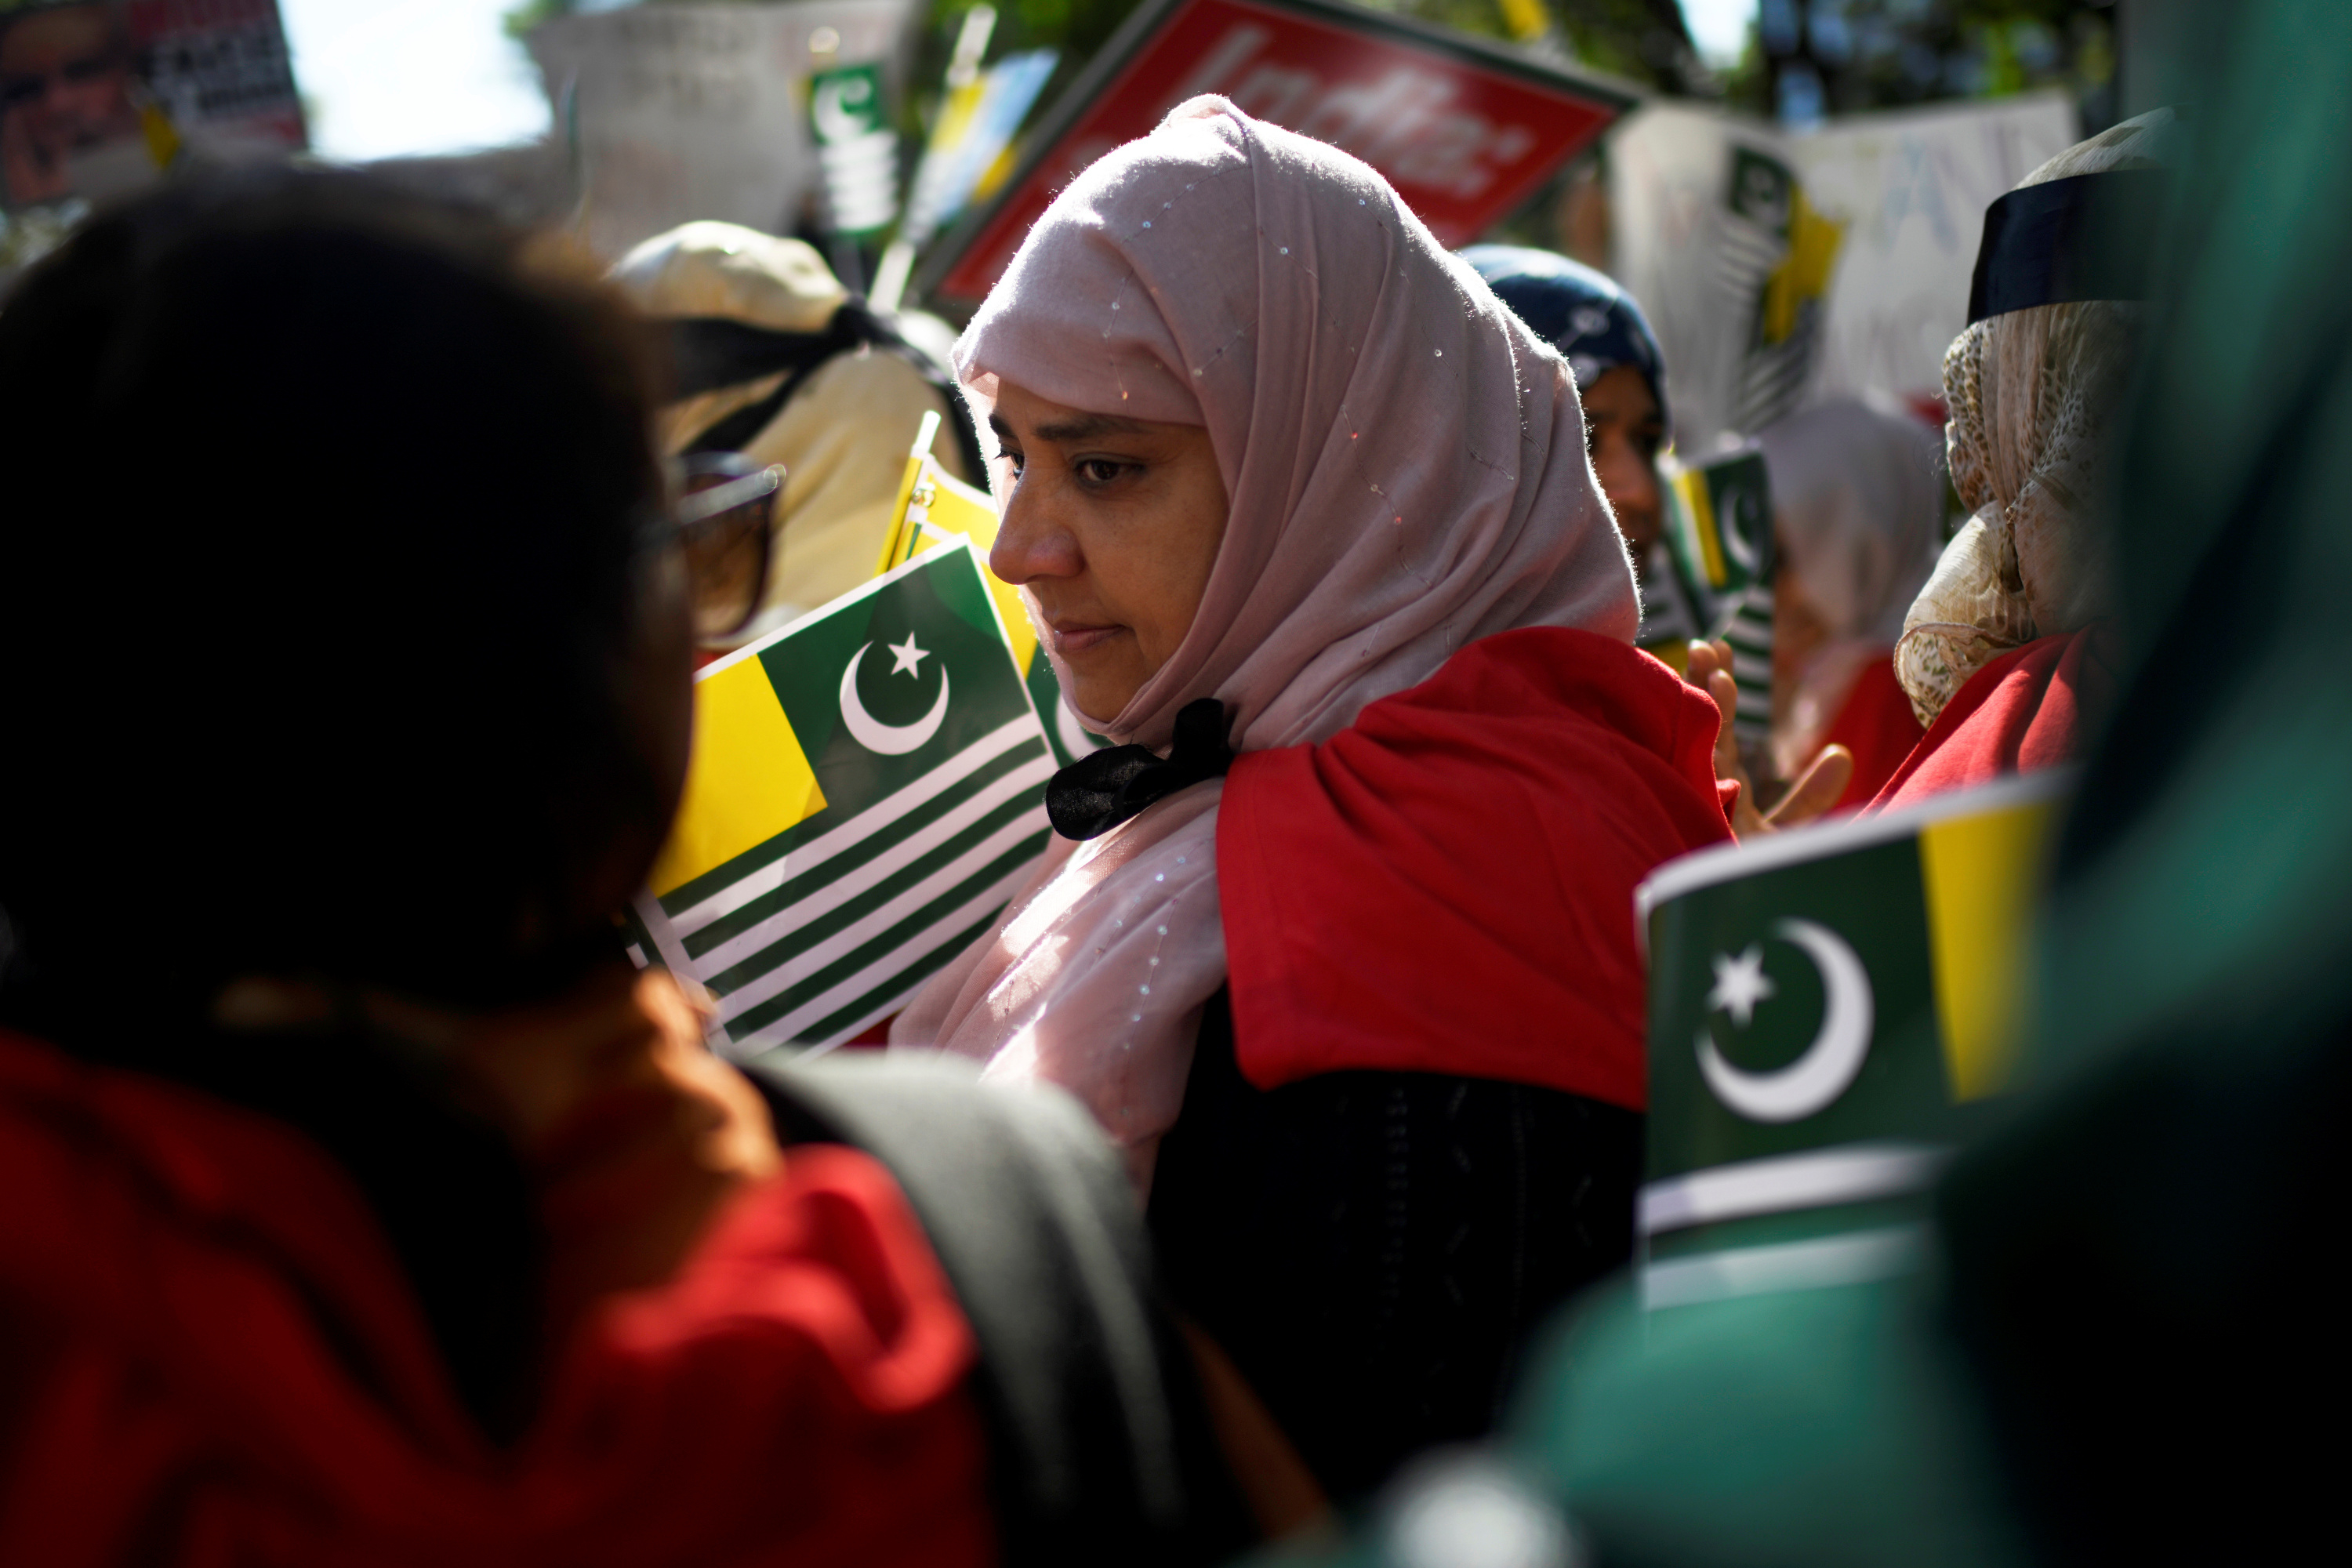 A woman holds a flag of Azad Kashmir at a protest in solidarity with the people of Kashmir. (Photo: REUTERS/Mark Kauzlarich)